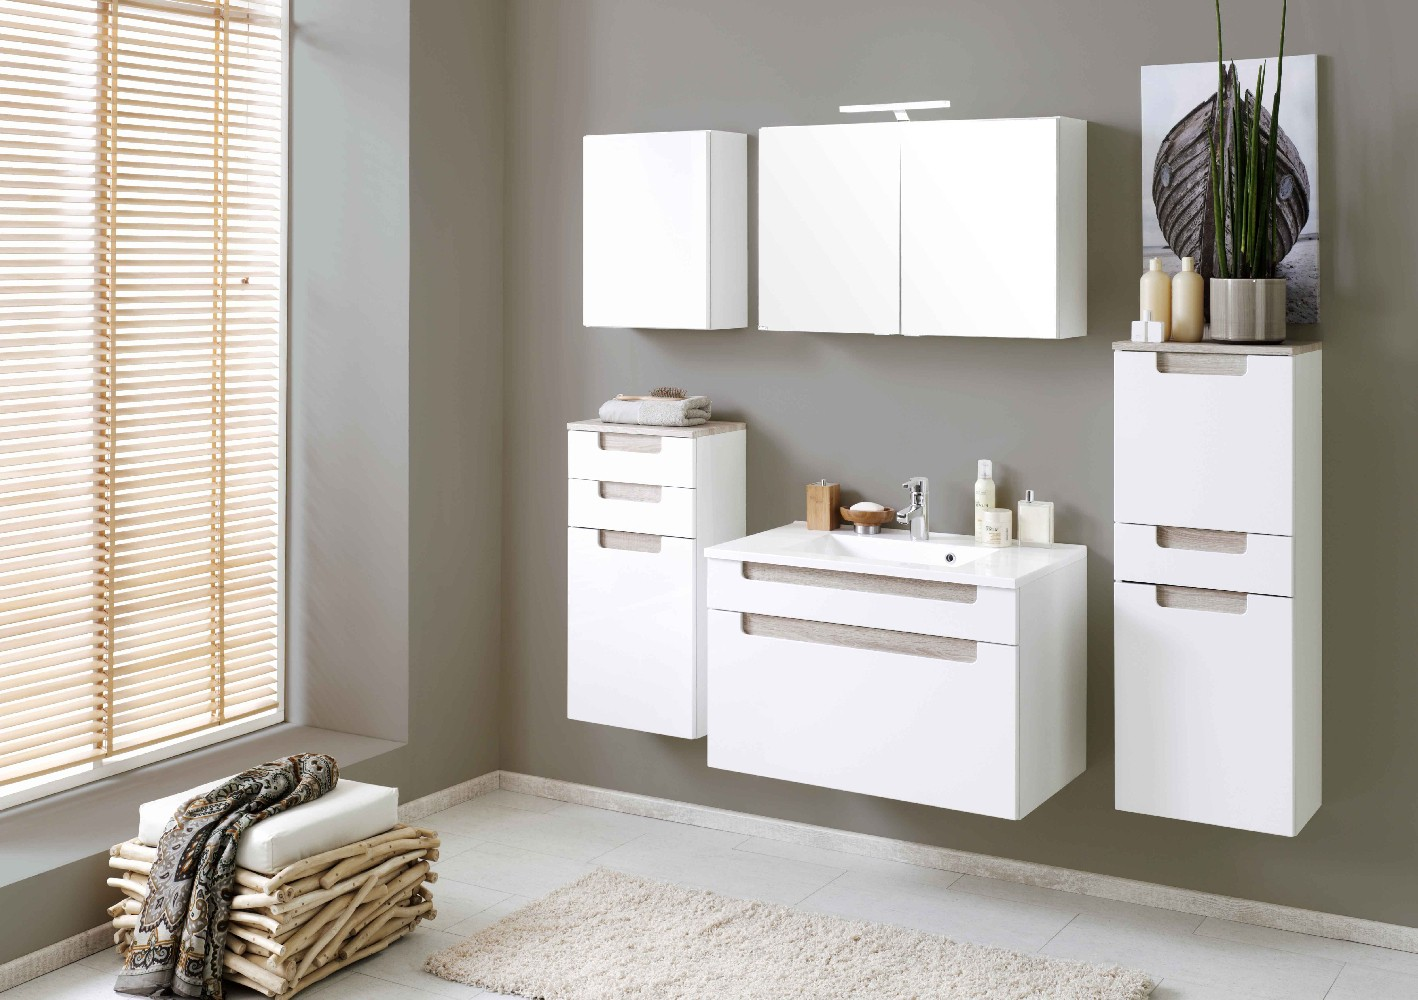 bad unterschrank siena 1 t rig 40 cm breit hochglanz wei eiche sonoma sonoma bad bad. Black Bedroom Furniture Sets. Home Design Ideas